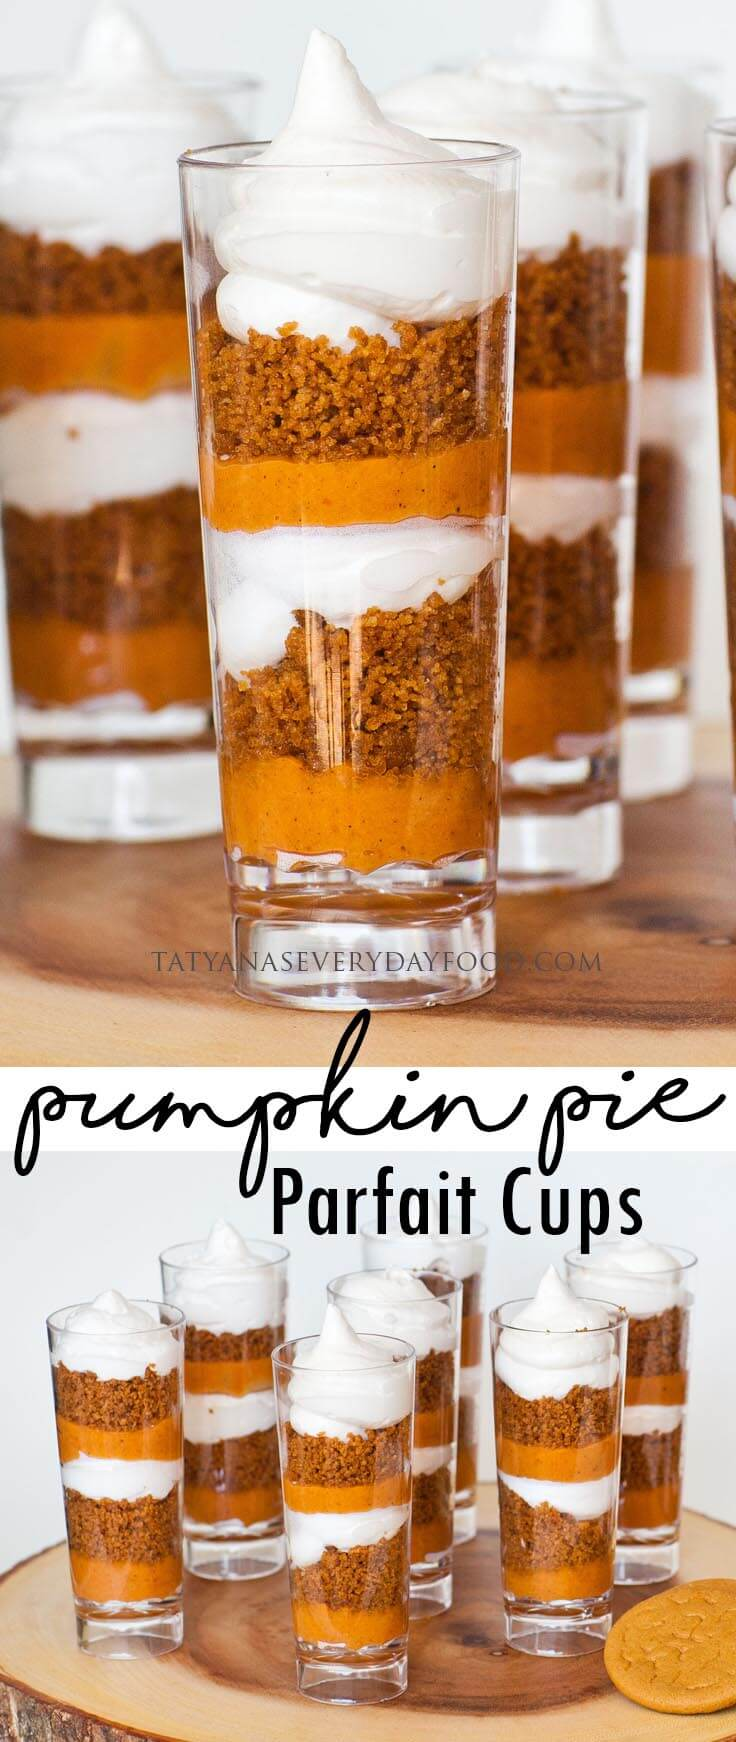 Pumpkin Pie Parfait Cups